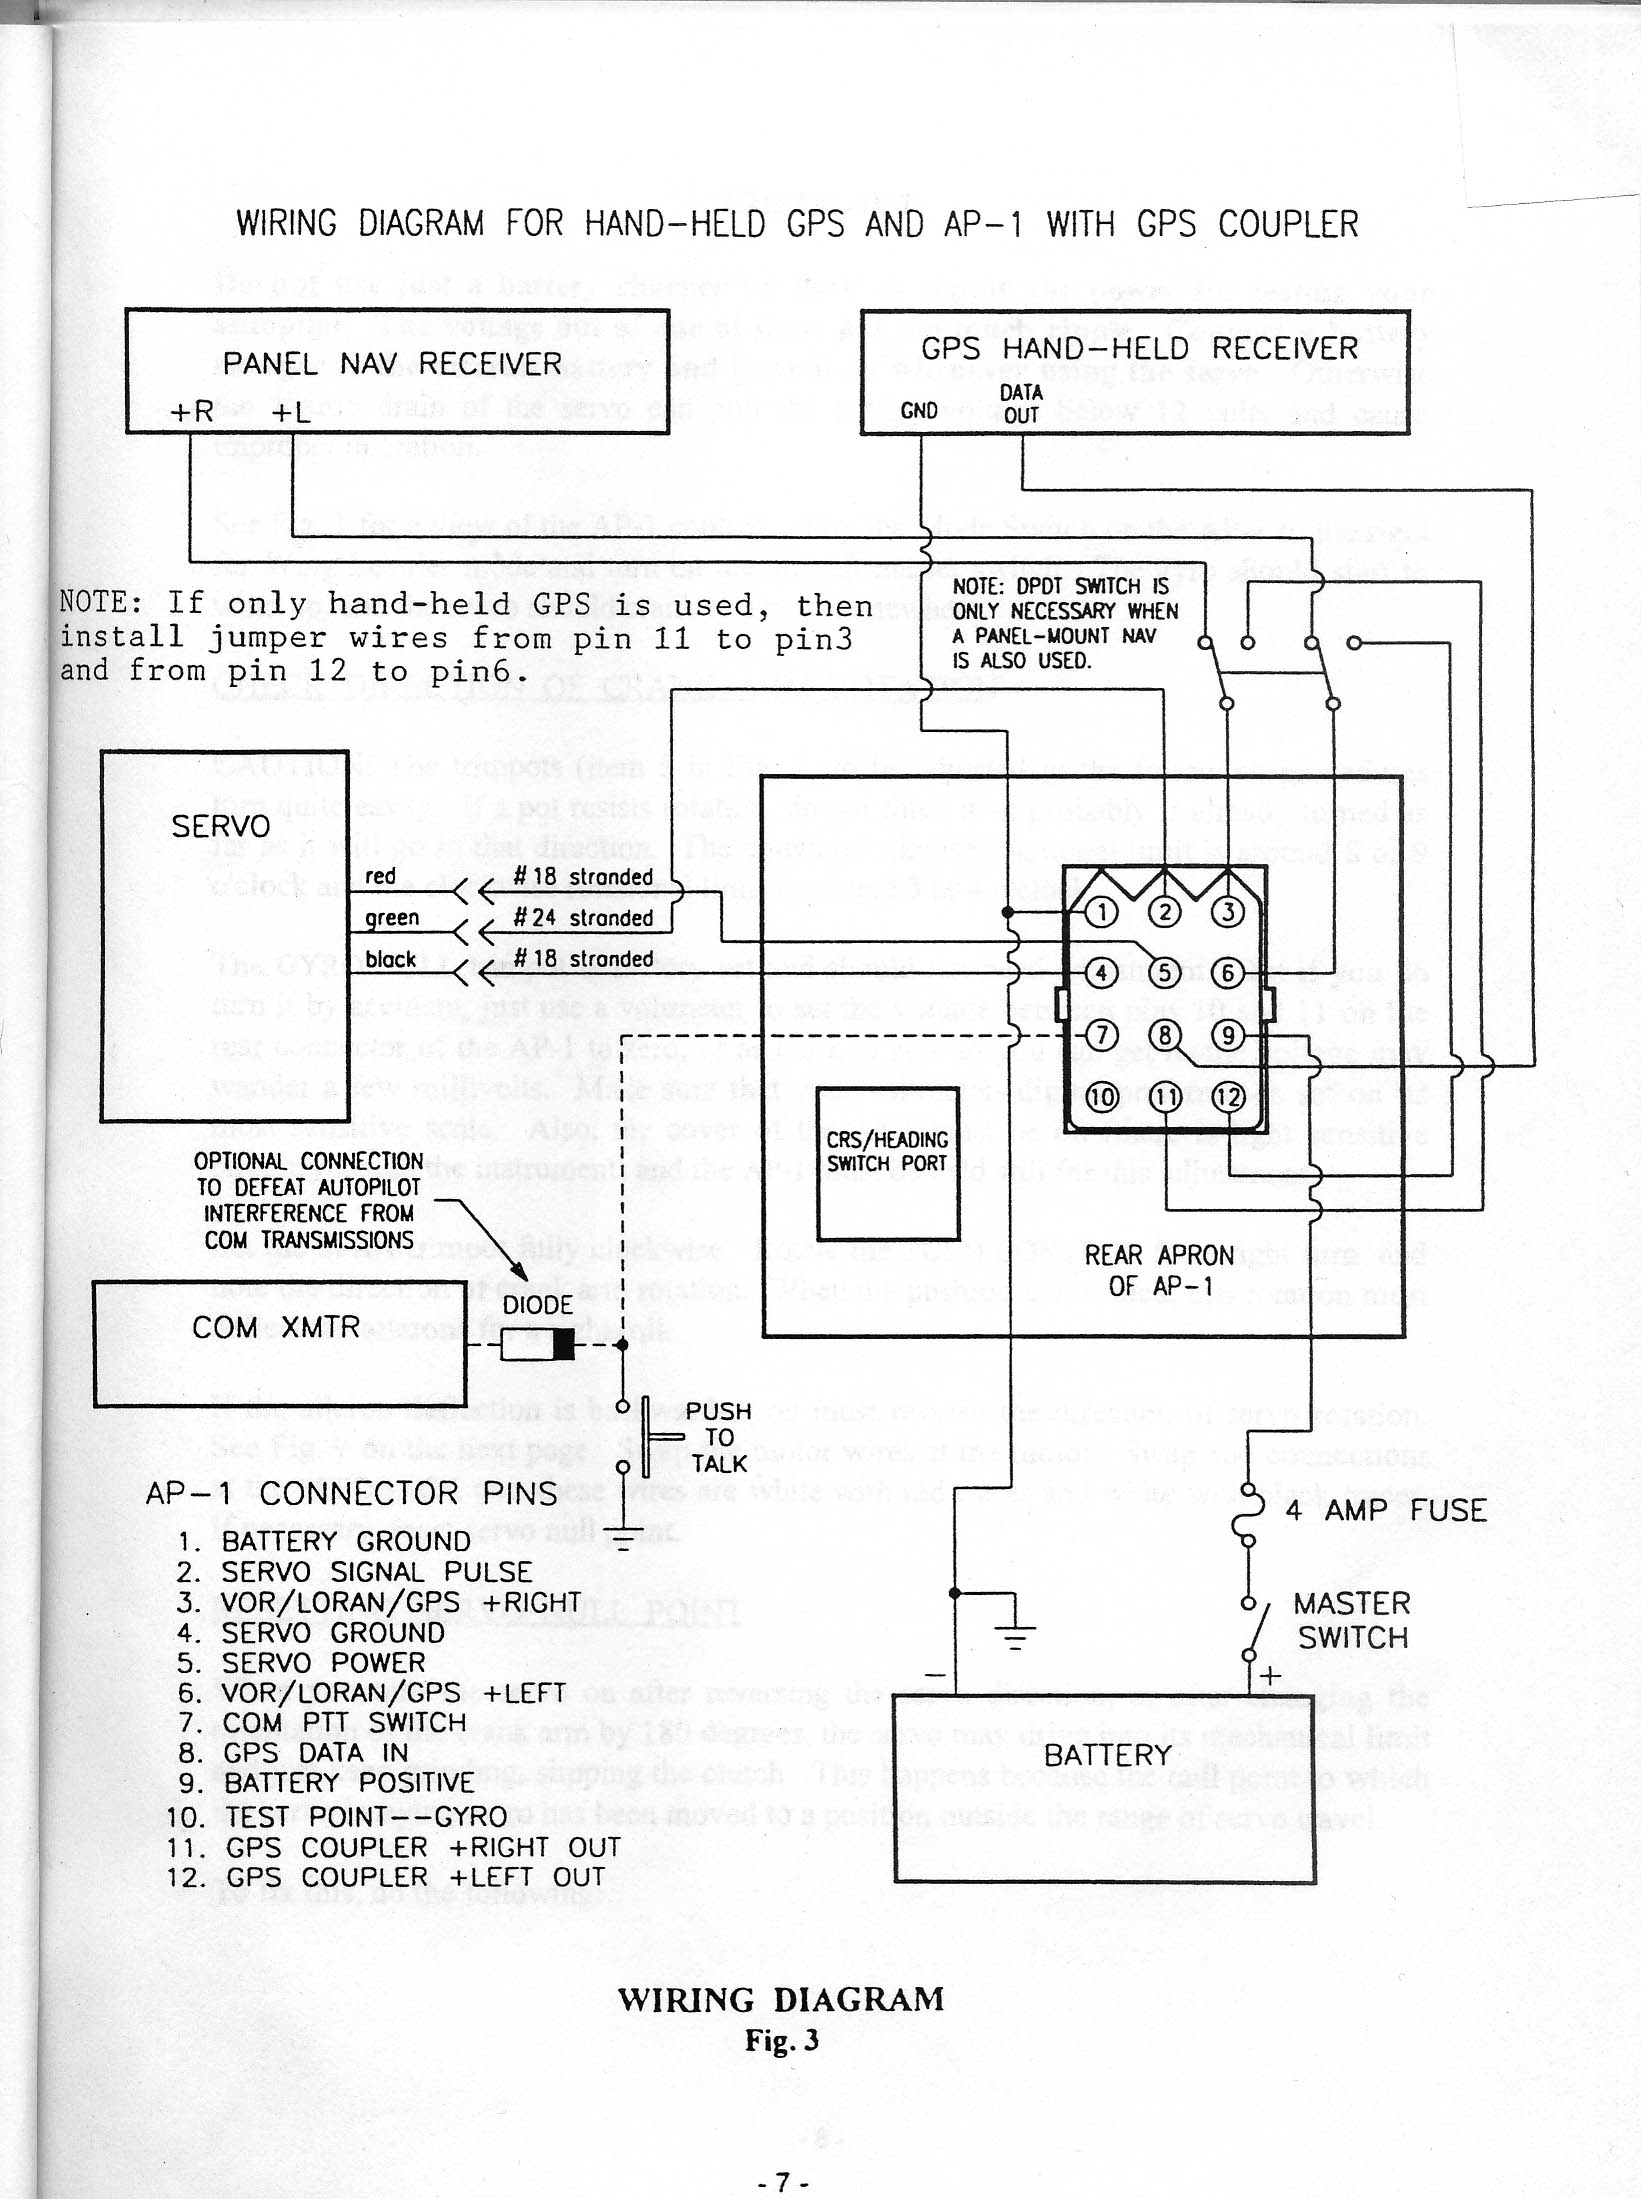 diagram king ky 92 wiring diagram automotive wiring diagrams \u2022 wiring king ka 134 audio panel wiring diagram at gsmx.co